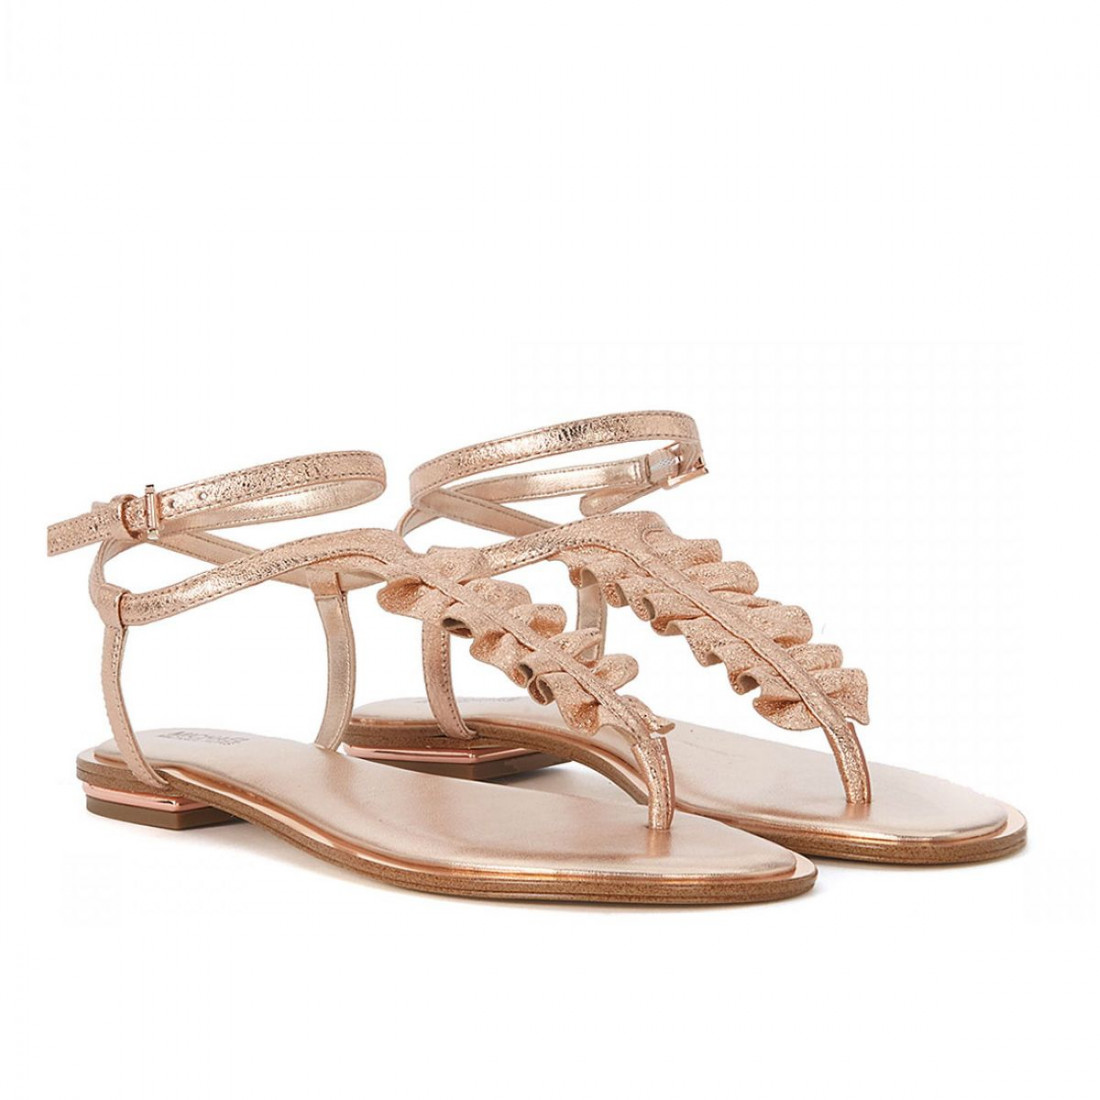 sandals woman michael kors 40s8blfa3m 187 3452